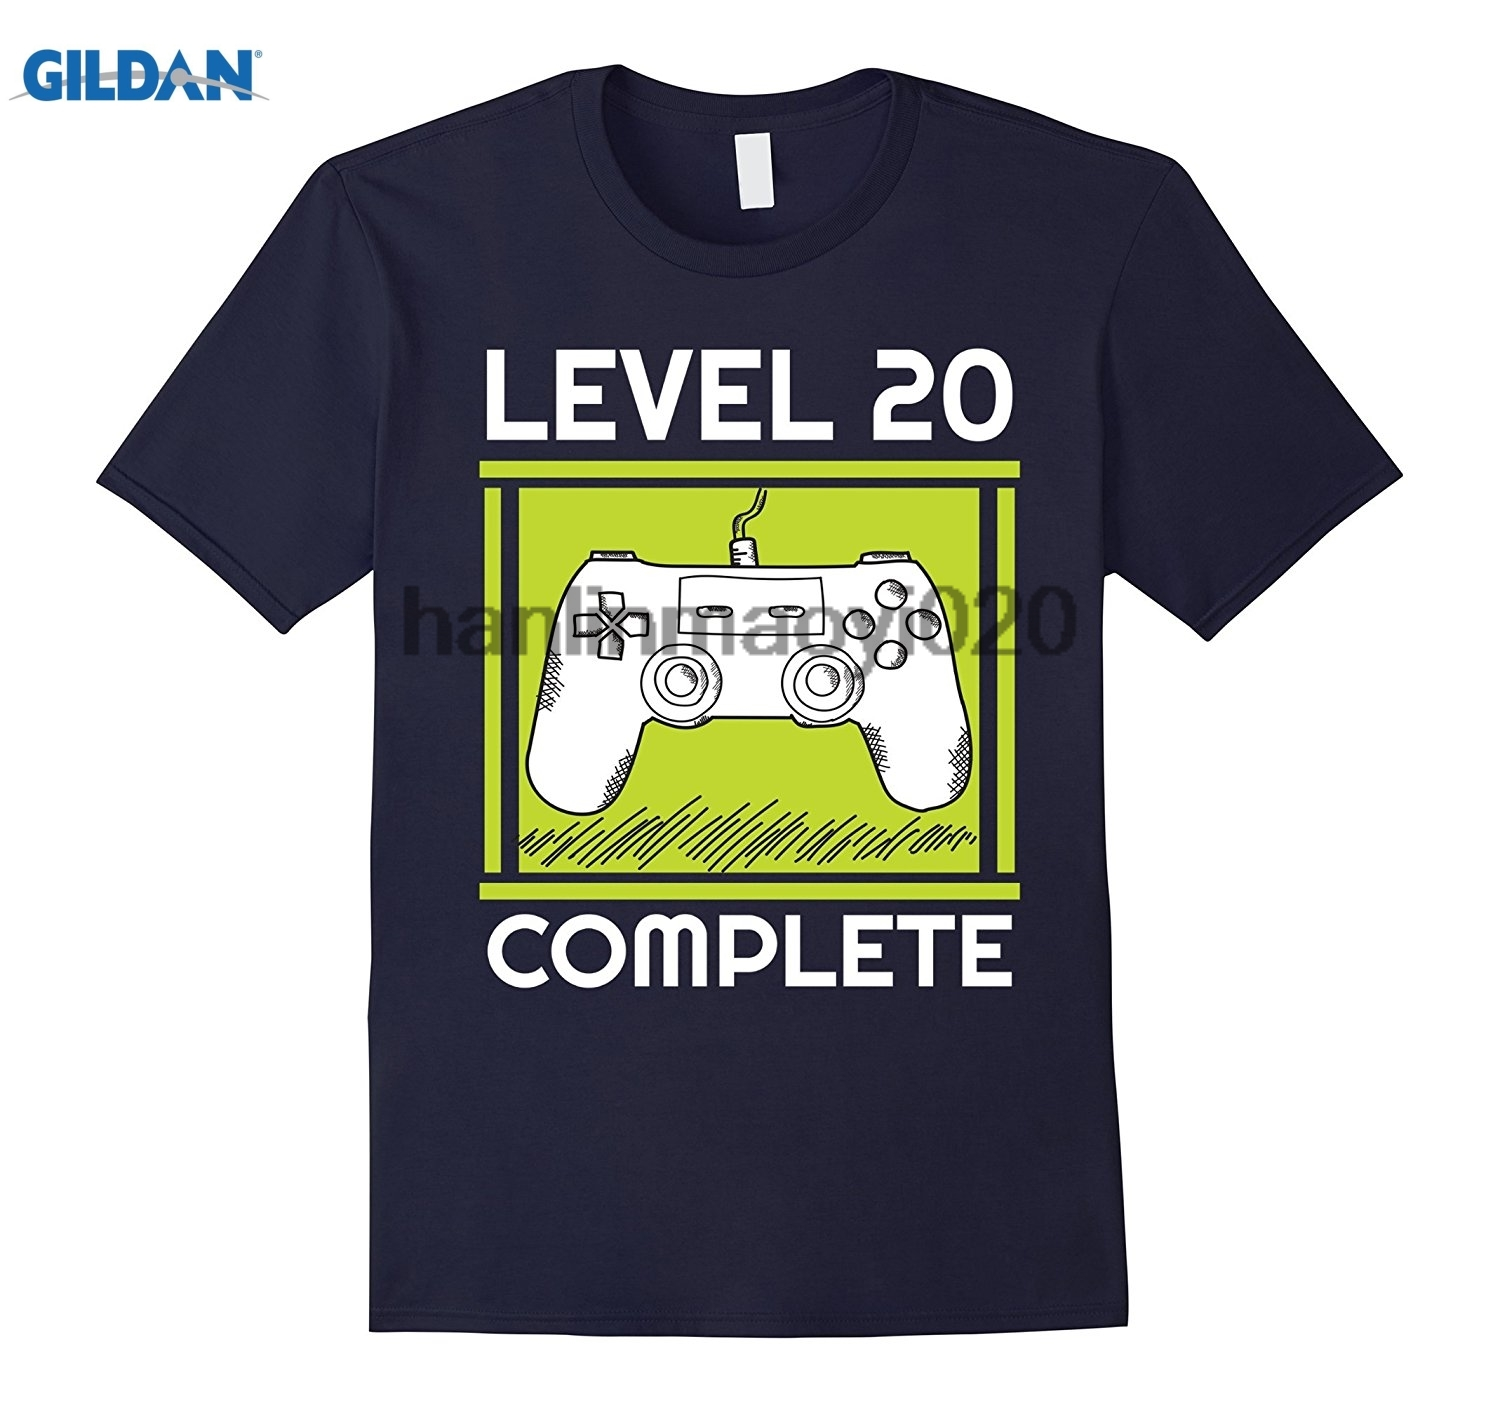 GILDAN Level 20 Complete Funny Video Games 20 Birthday Gift T-Shirt